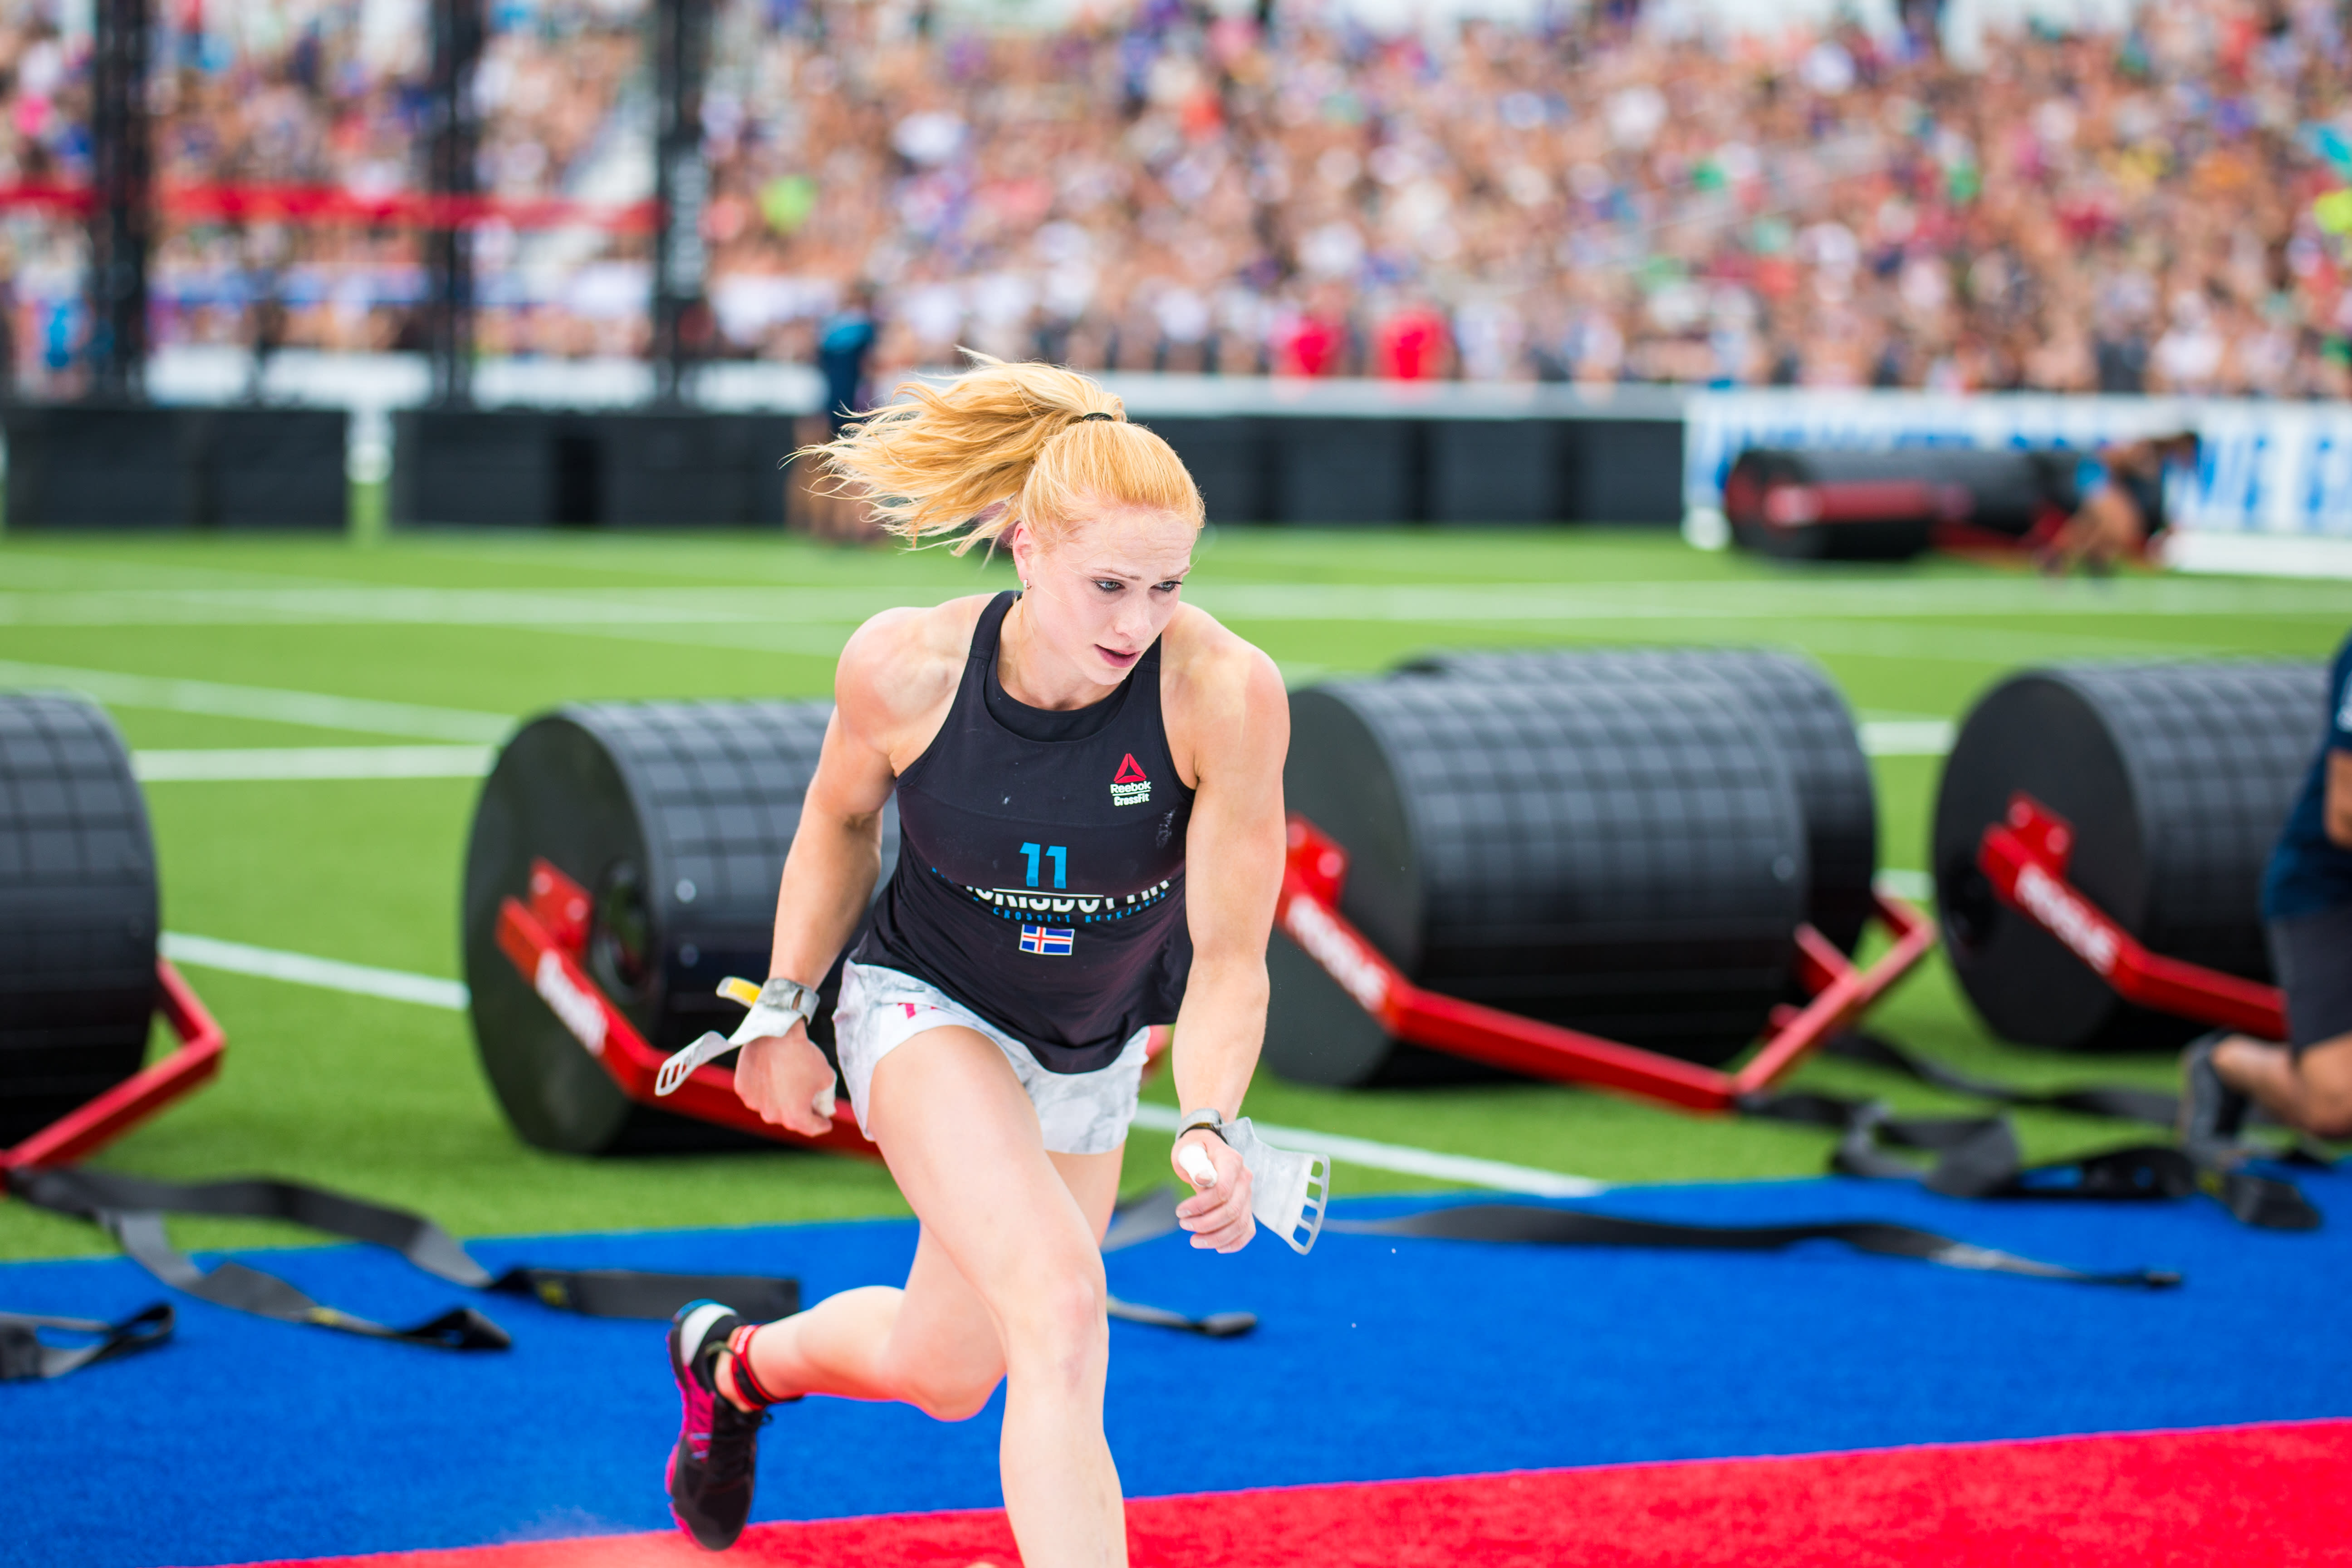 Annie Thorisdottir Talks National Champions and Why Everyone Should Redo Open Workouts